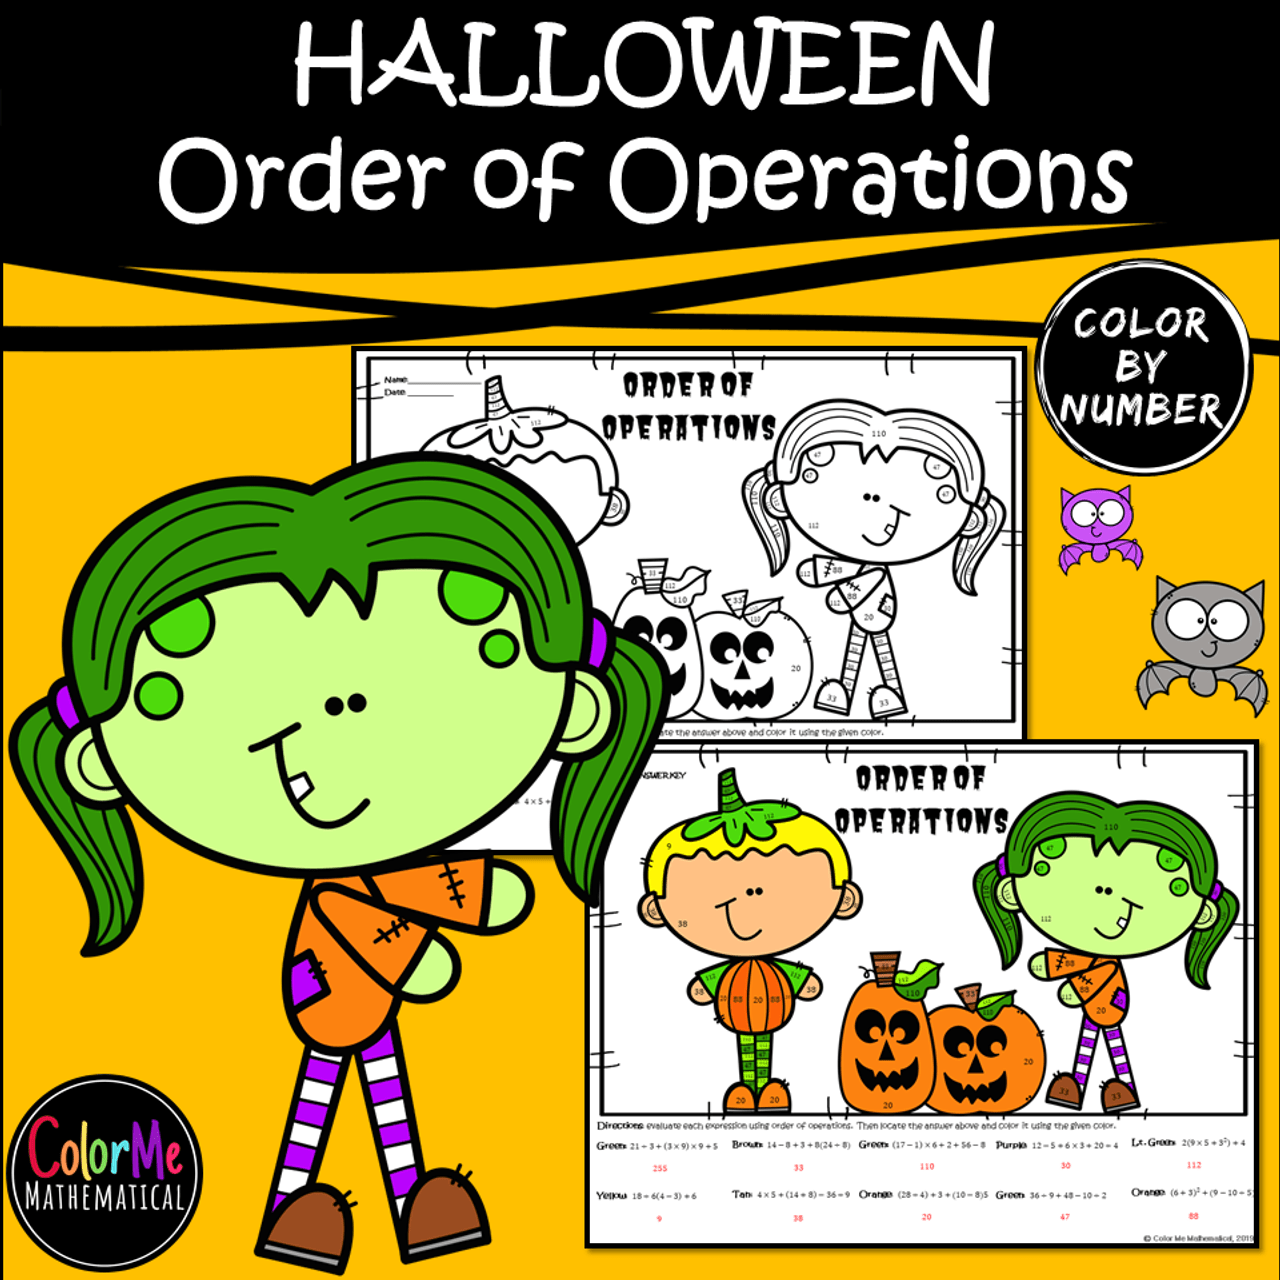 hight resolution of Halloween Basic Algebra - Order of Operations Worksheet - Color by Number -  Amped Up Learning